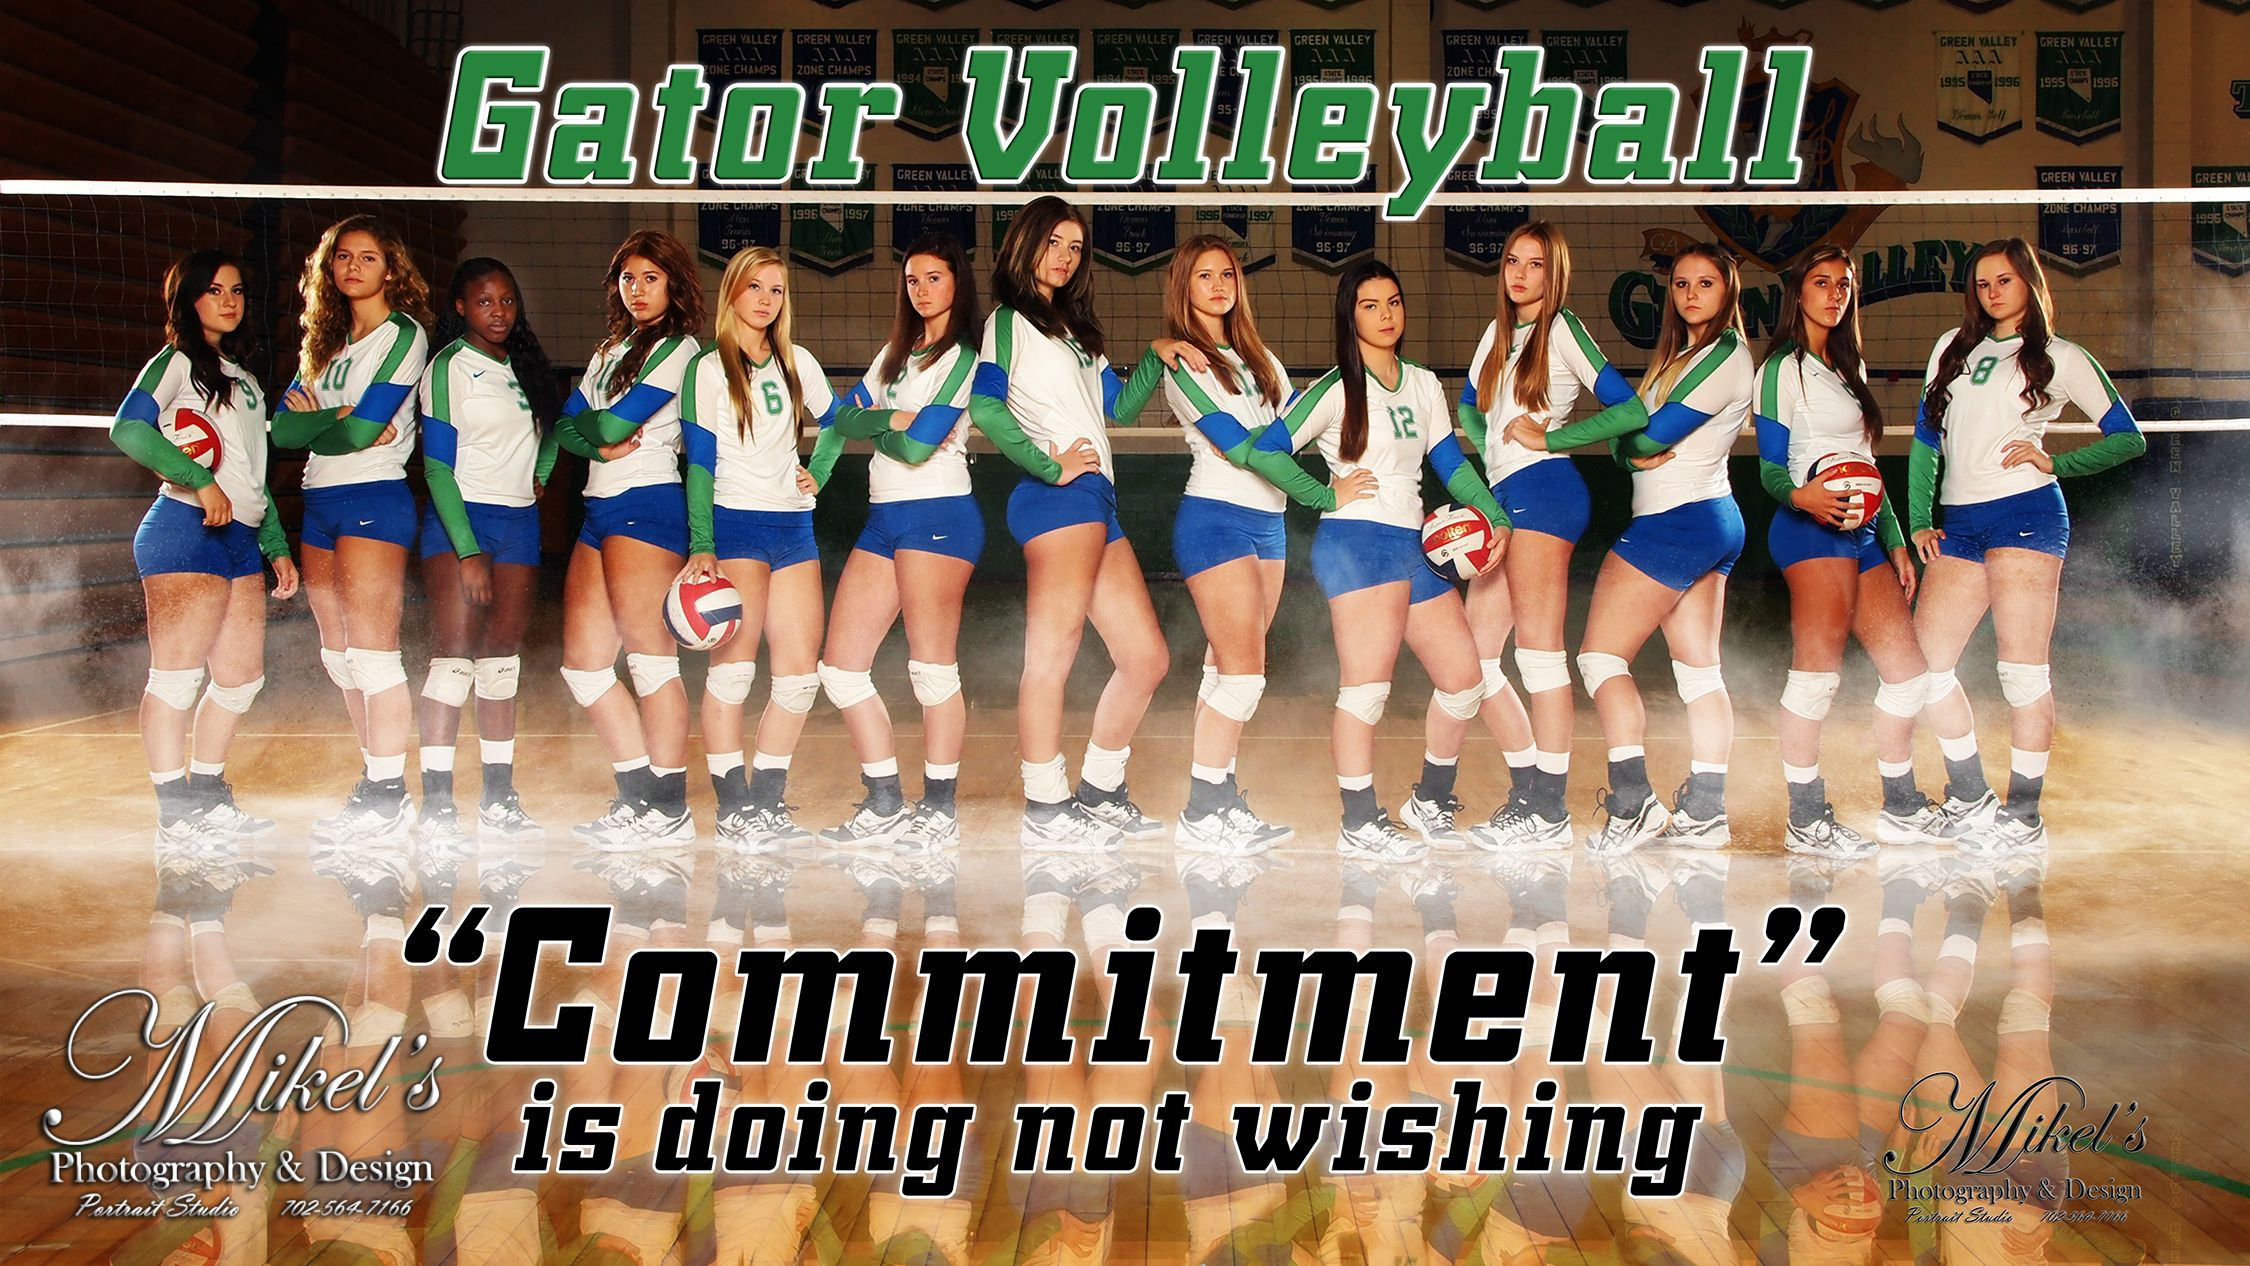 Green Valley Hs Volleyball Banner Mikel S Photography Design Www Mikelsphotography Com 702 564 7166 Volleyball Photography Volleyball Mom Team Poster Ideas